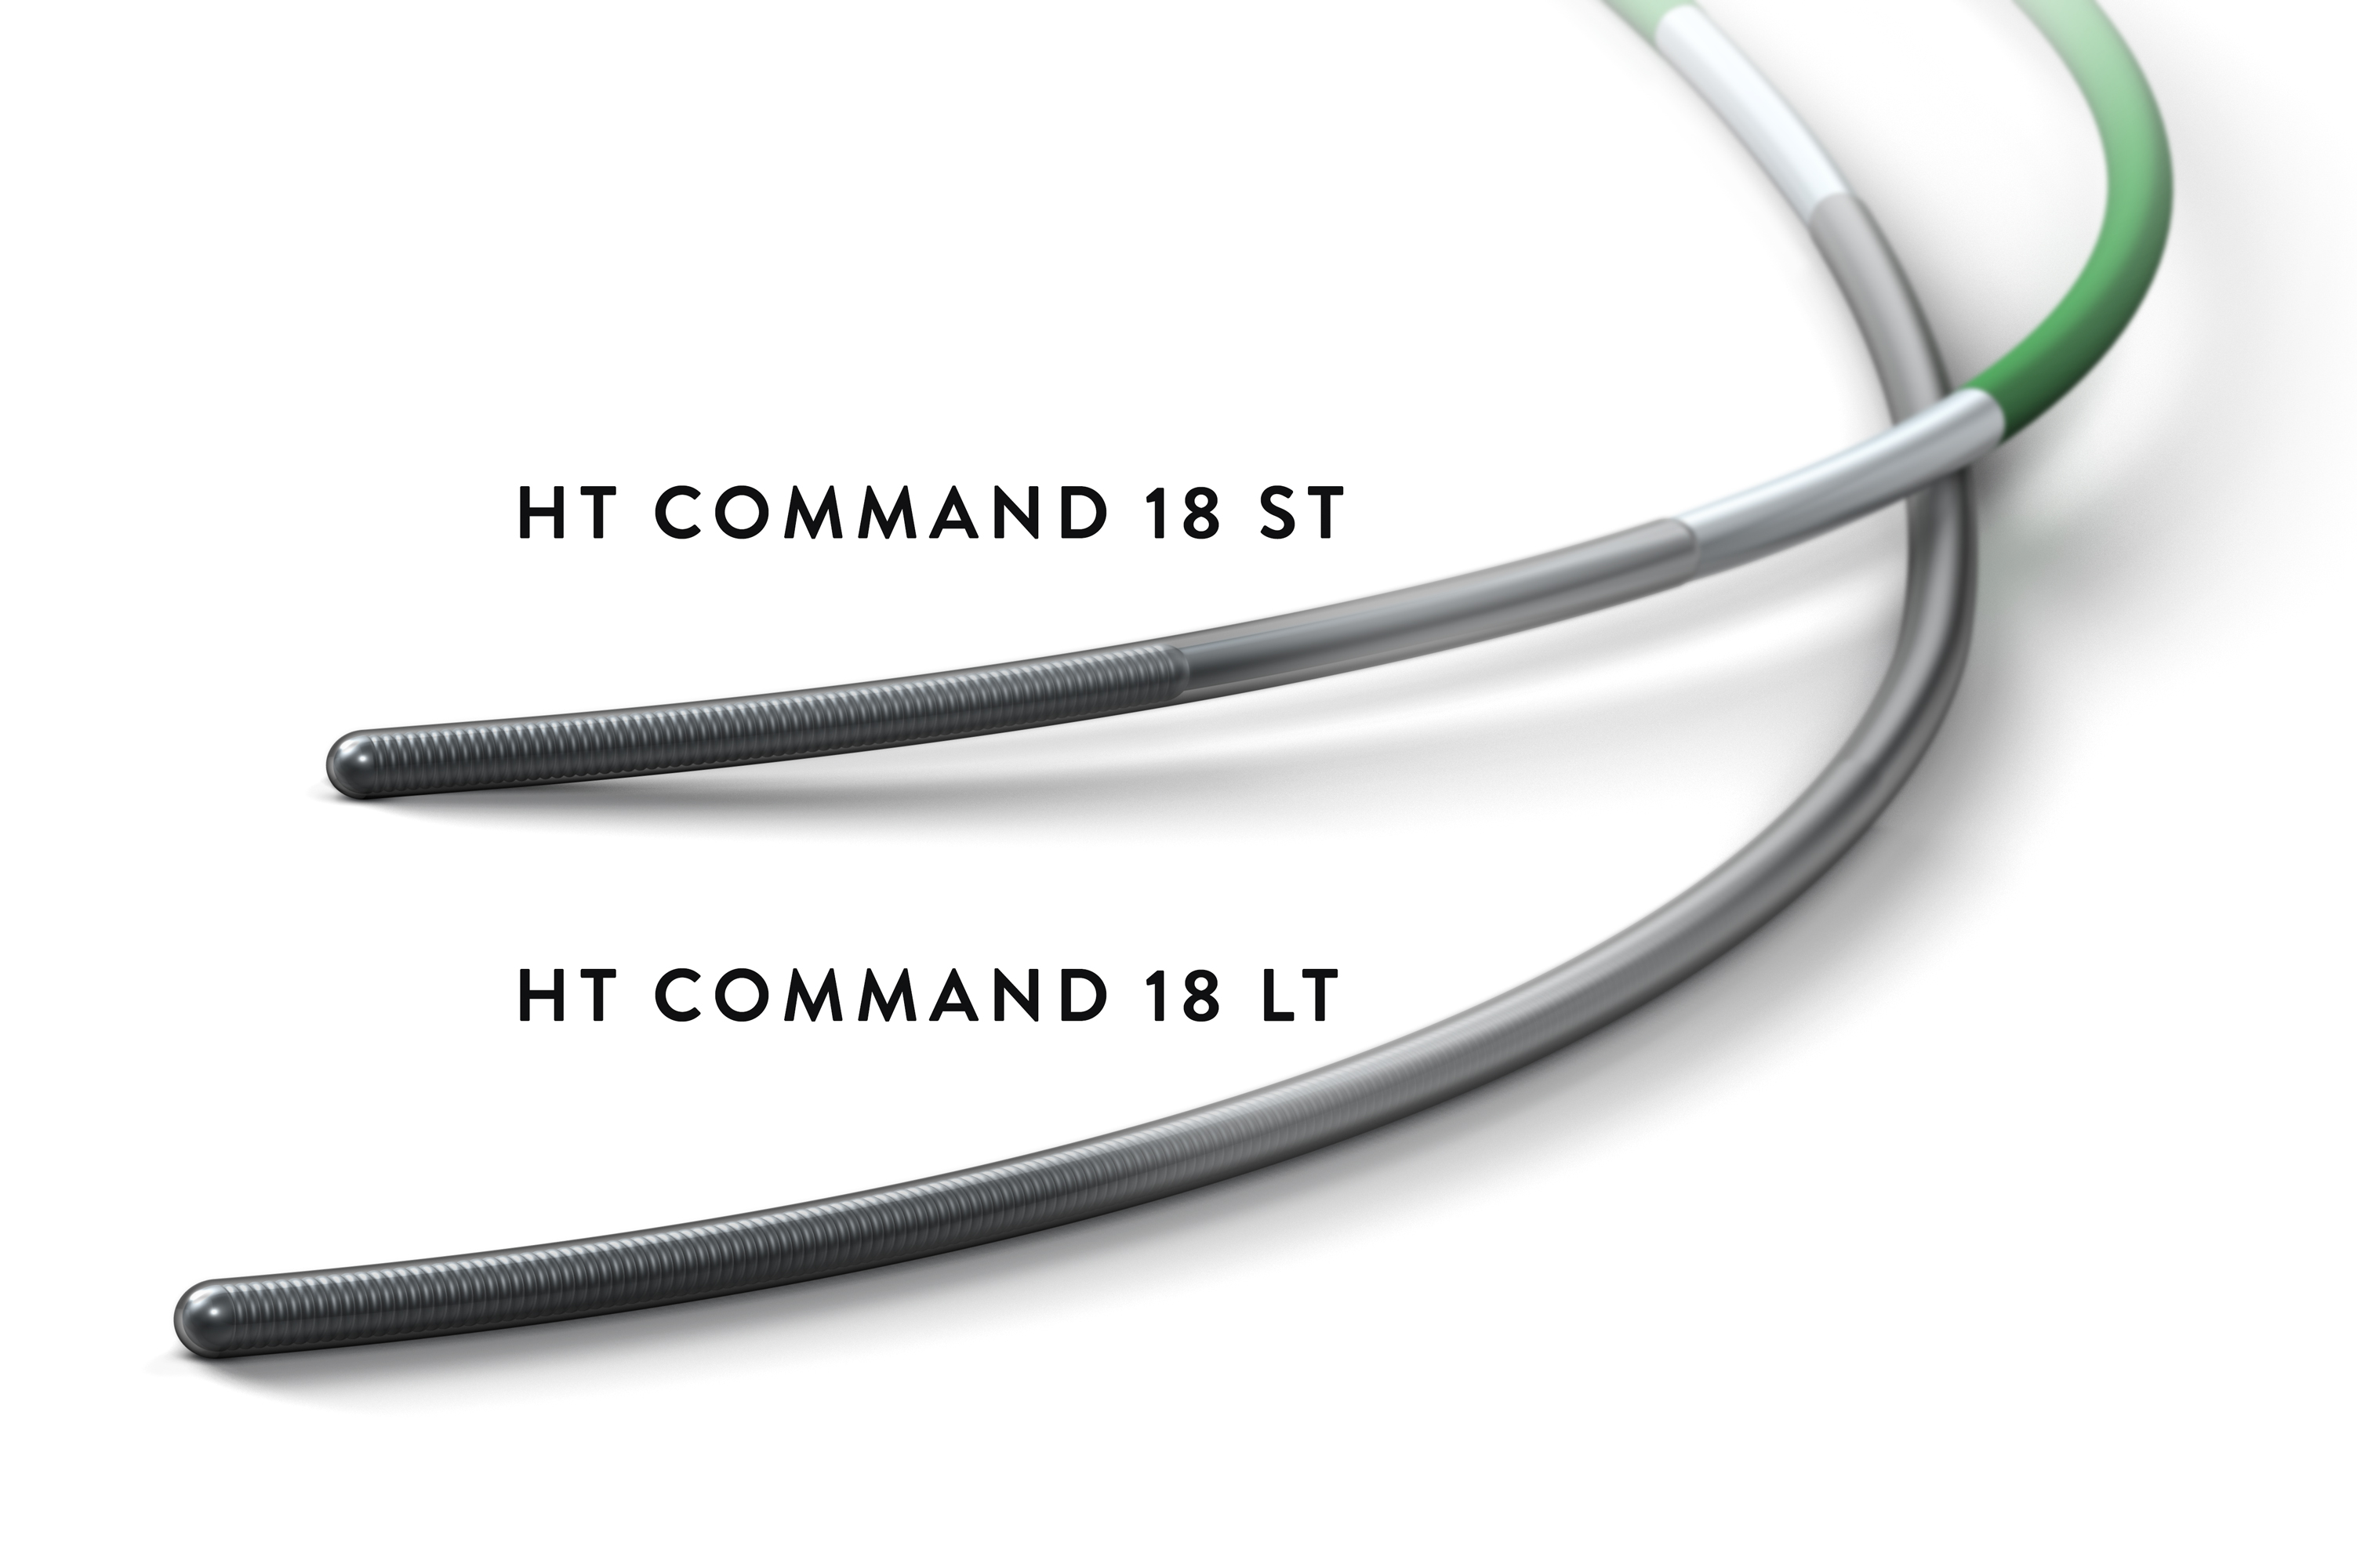 Two Hi-Torque Command 18 guide wires